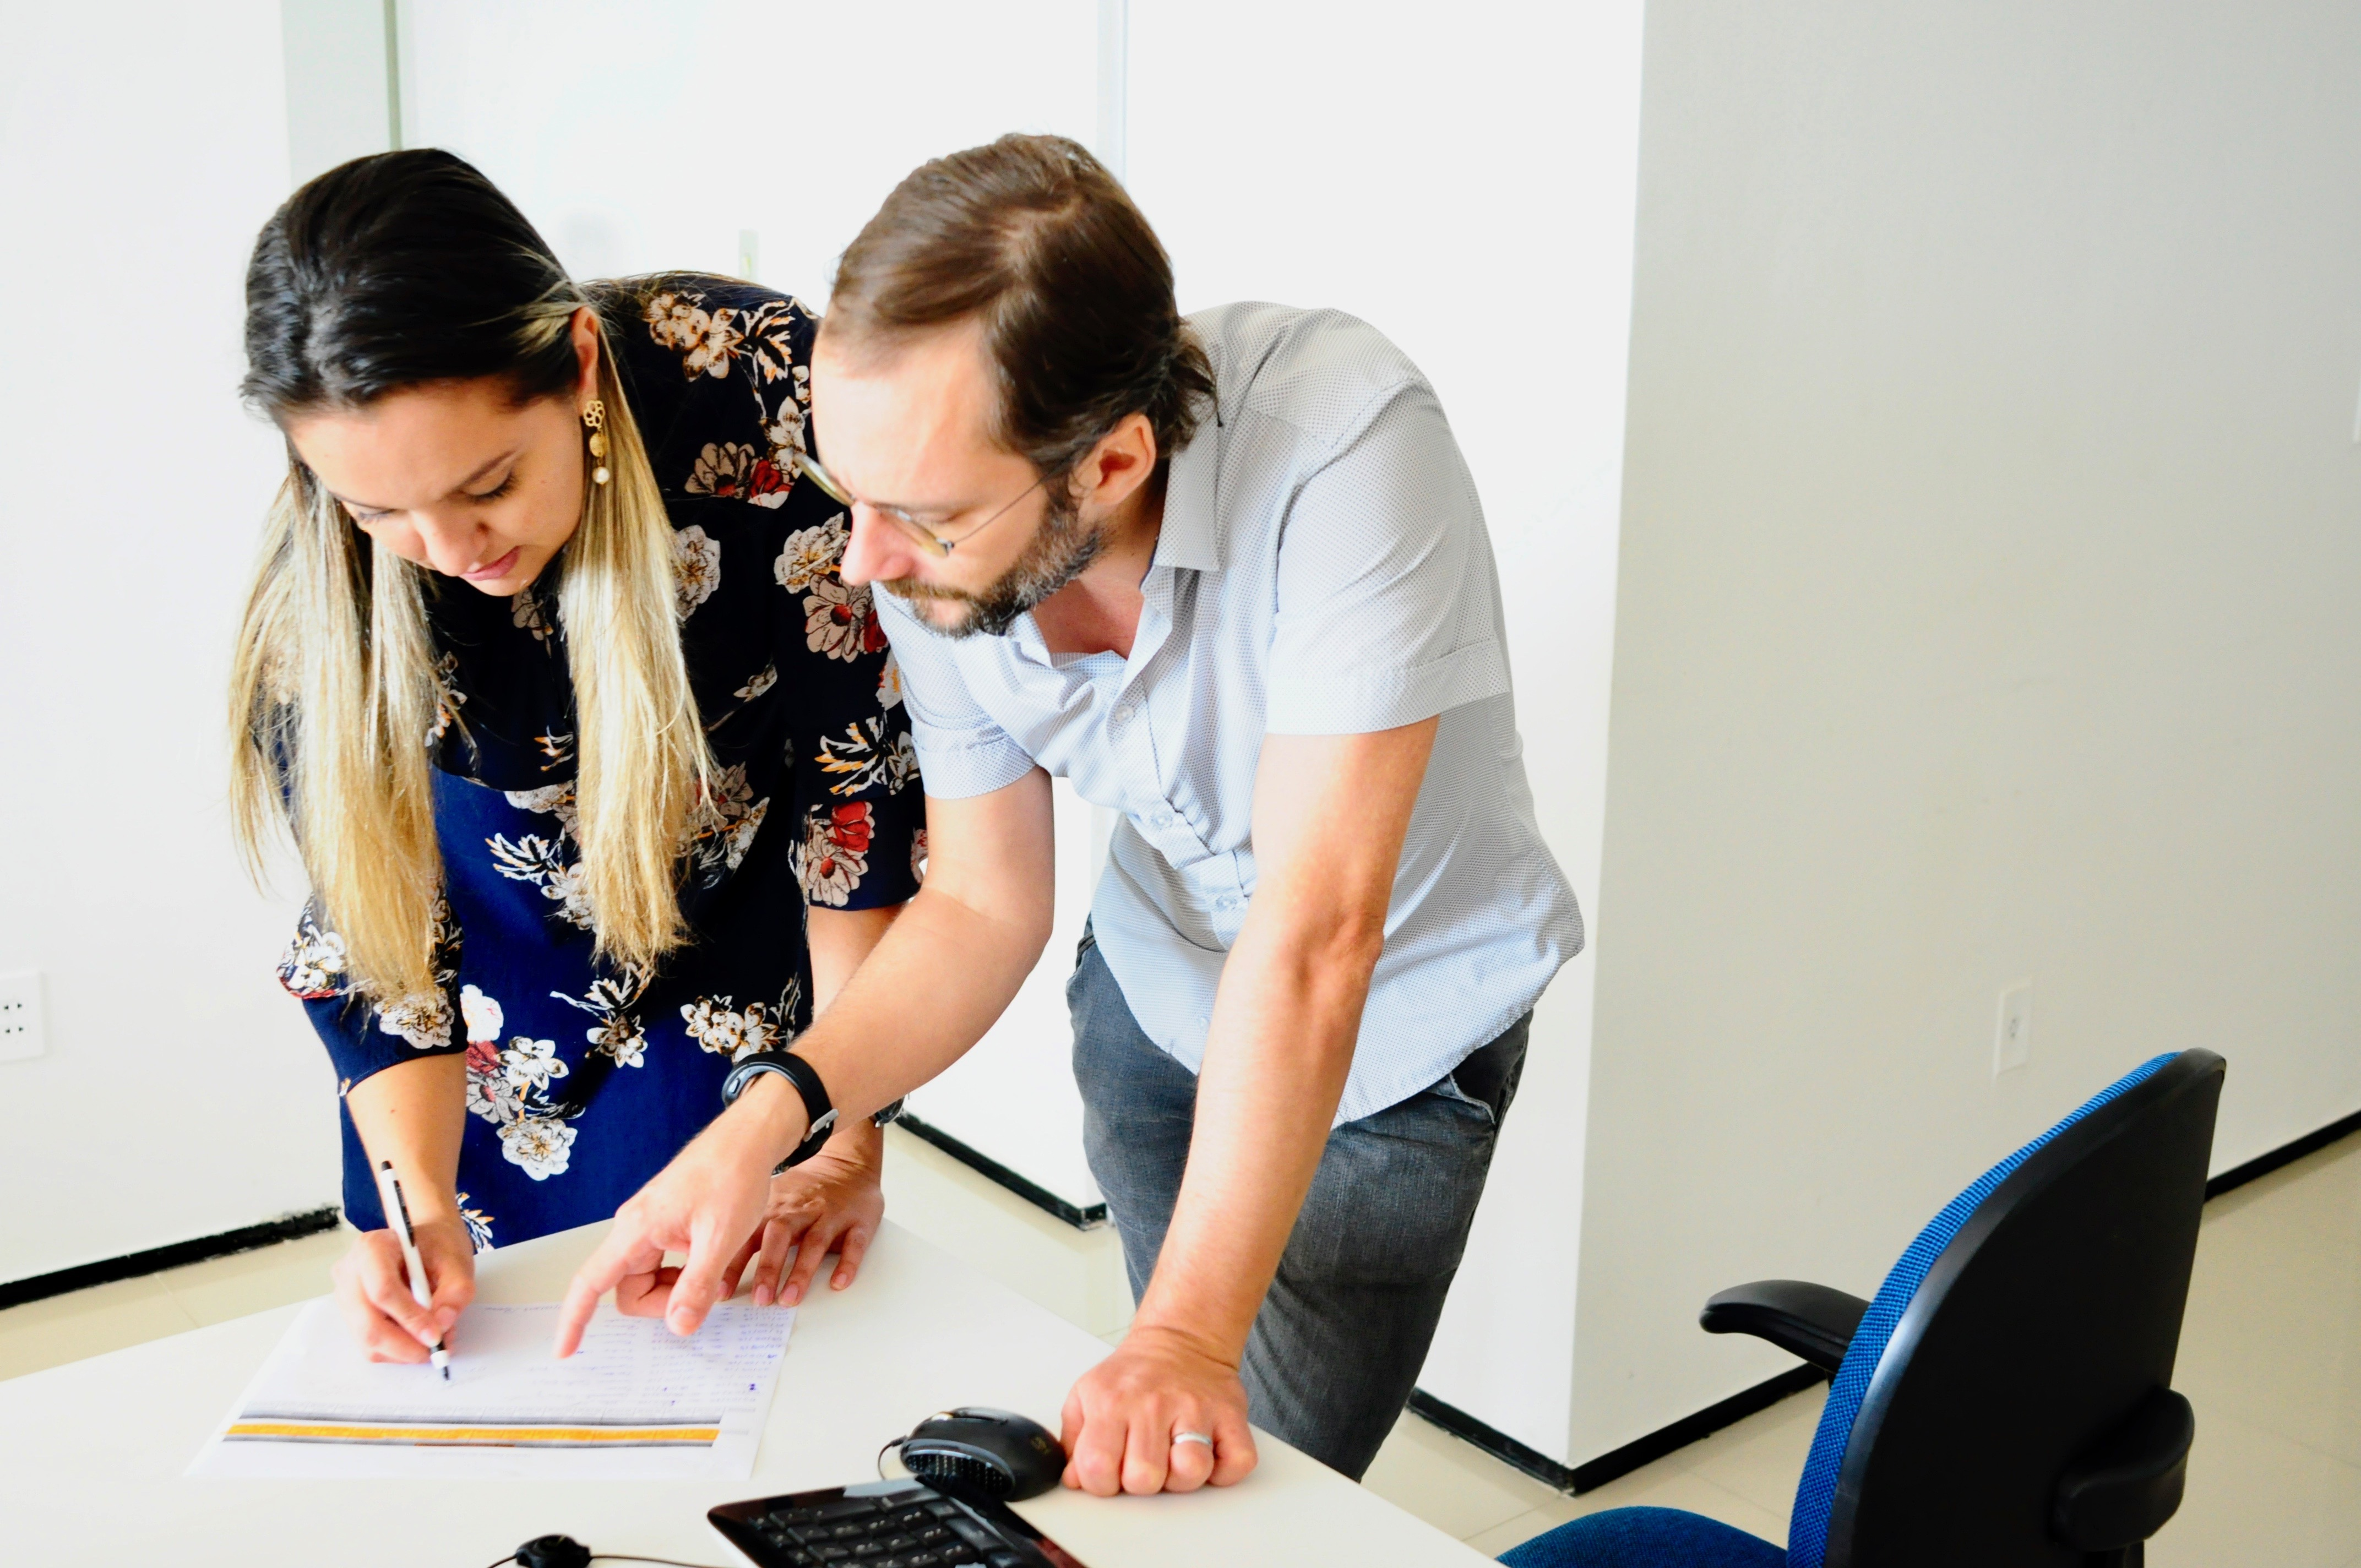 Pierre and Gloria working in a clients proposal.